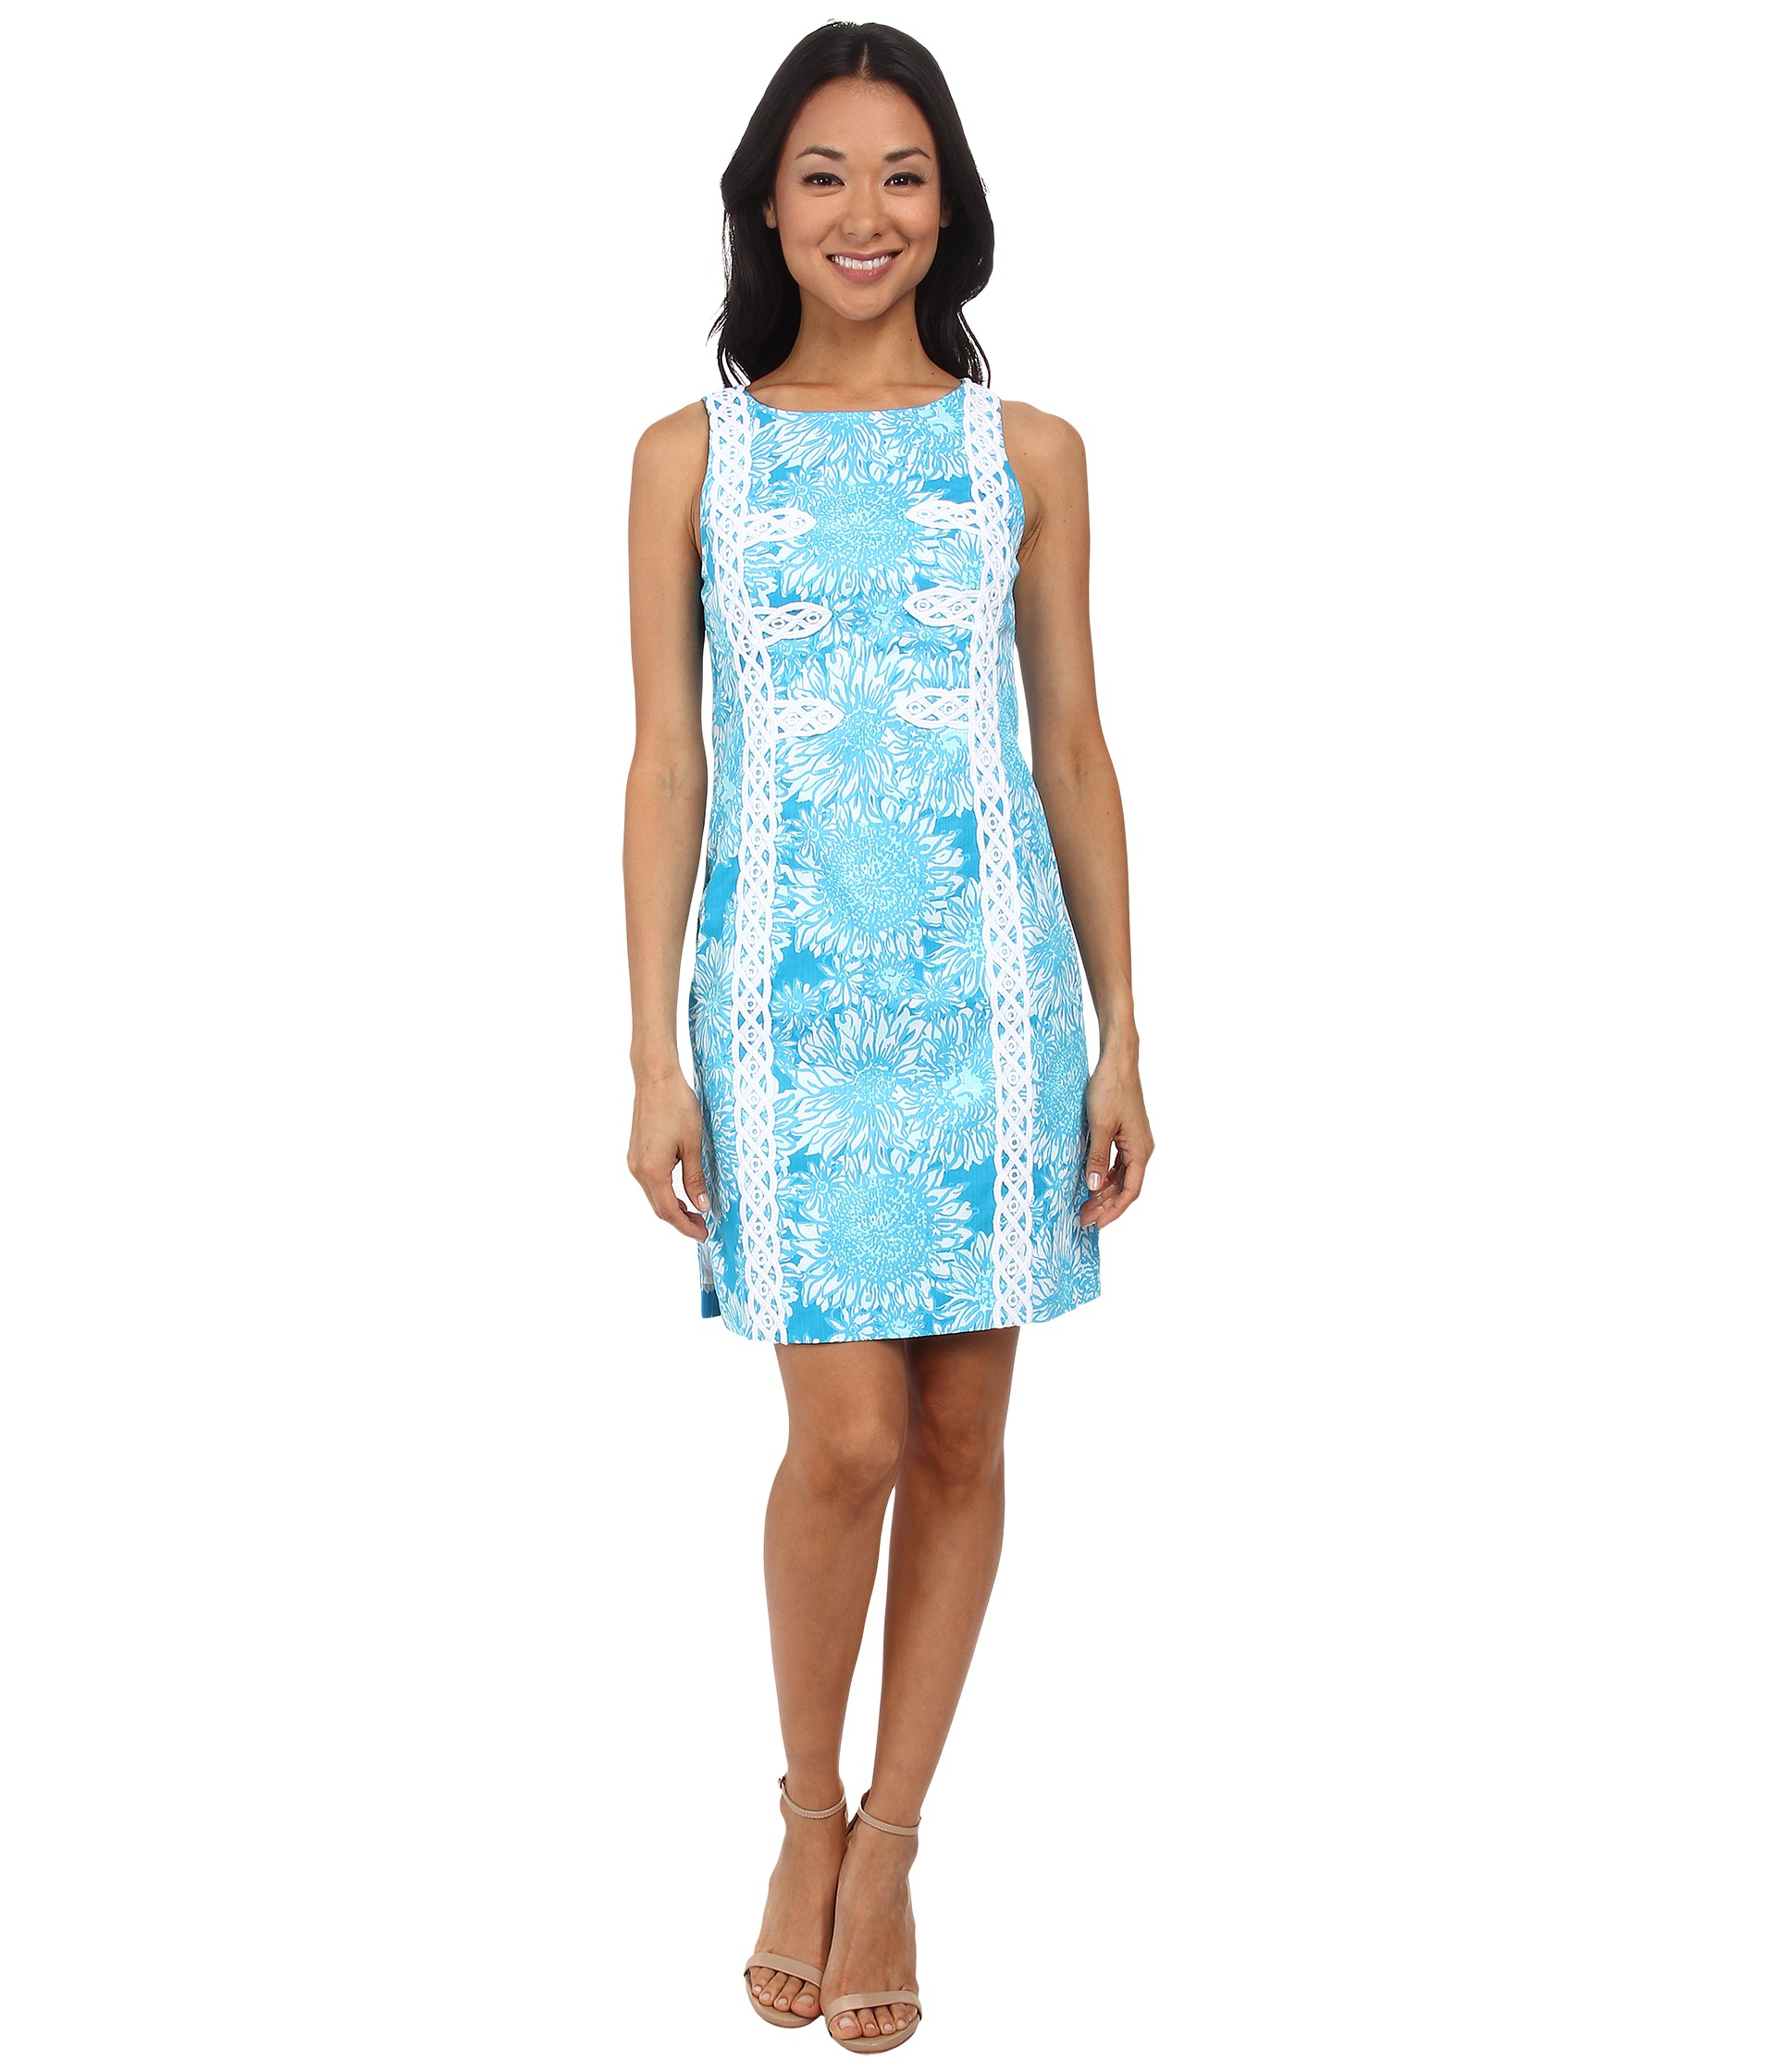 00b335a9043 Lyst - Lilly Pulitzer Mirabelle Shift Dress in Blue